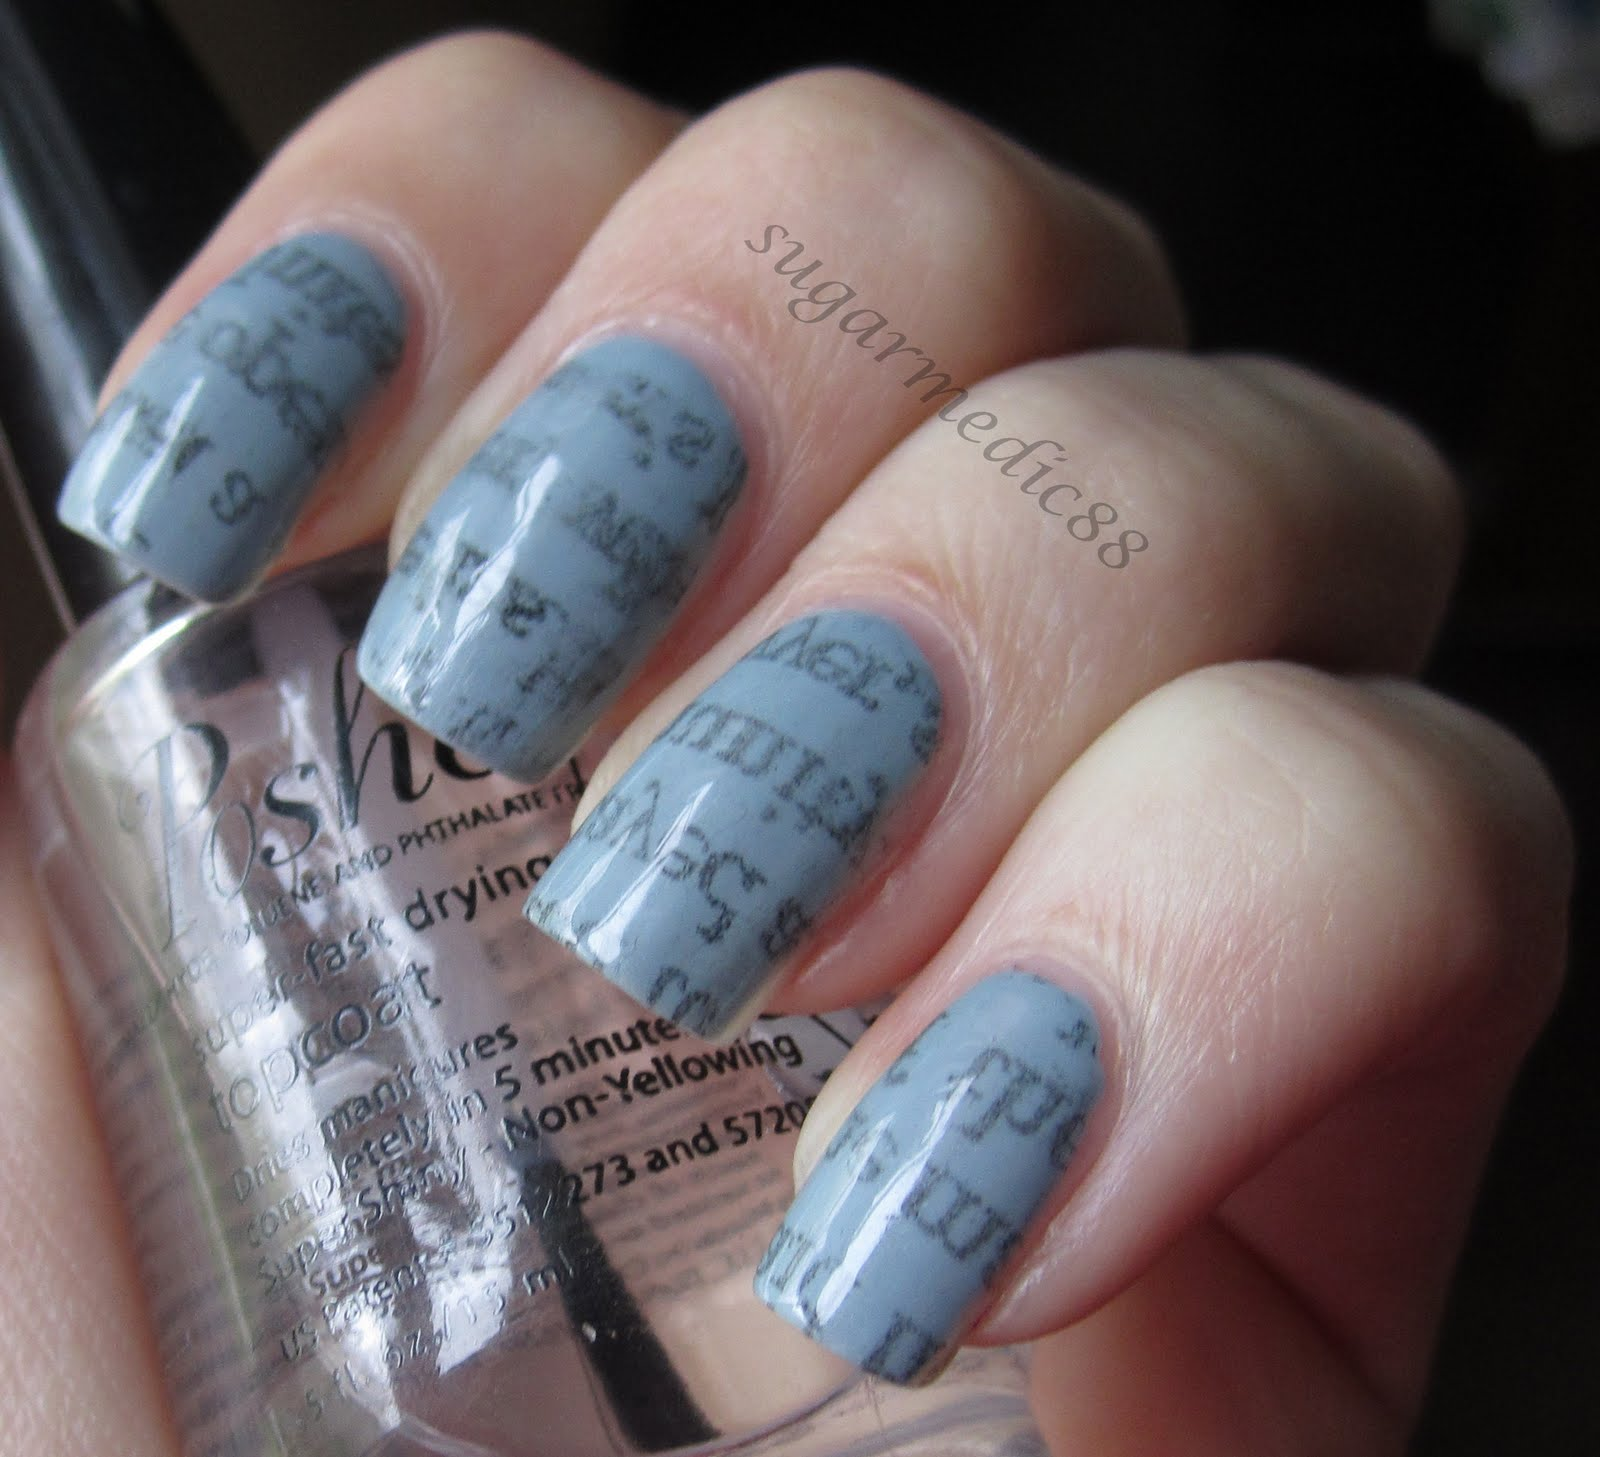 NewsPaper Nails Tutorial | NayDanielleBlog